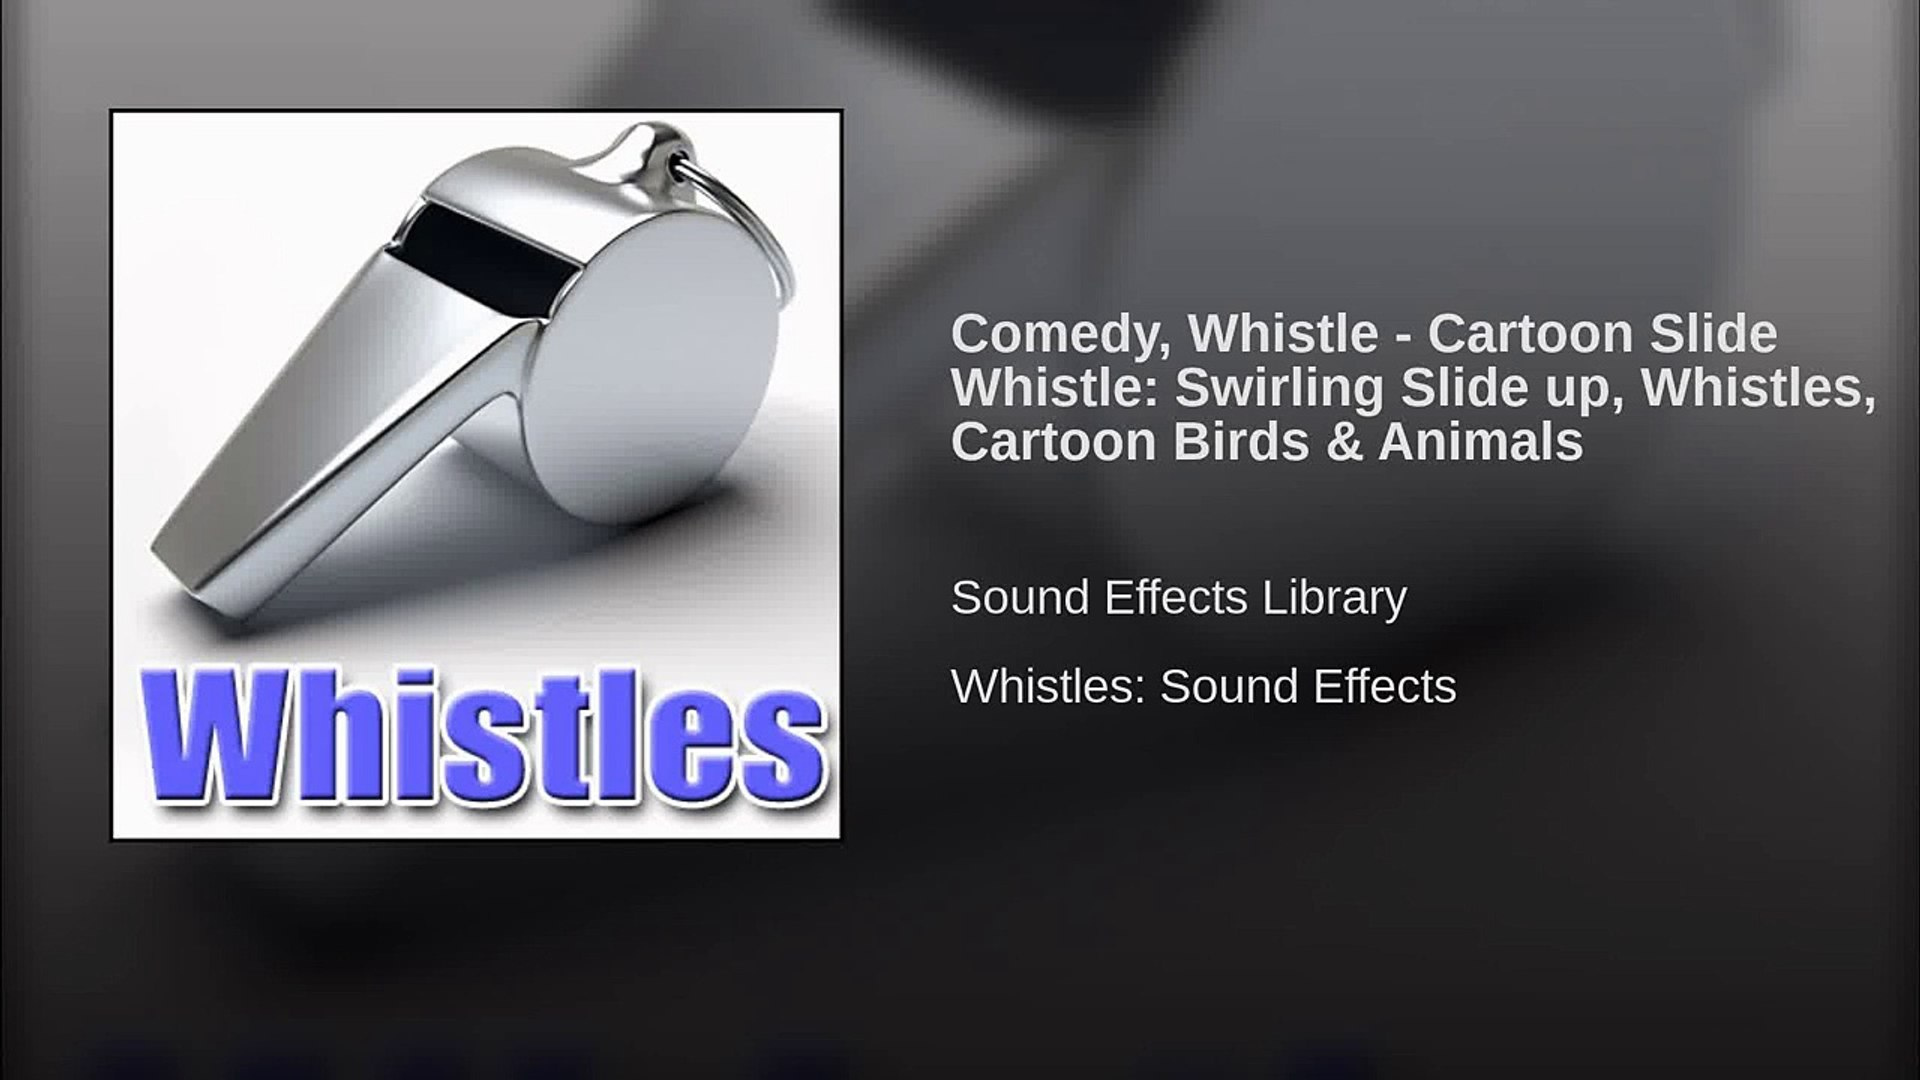 Comedy, Whistle - Cartoon Slide Whistle: Swirling Slide up, Whistles,  Cartoon Birds & Animals